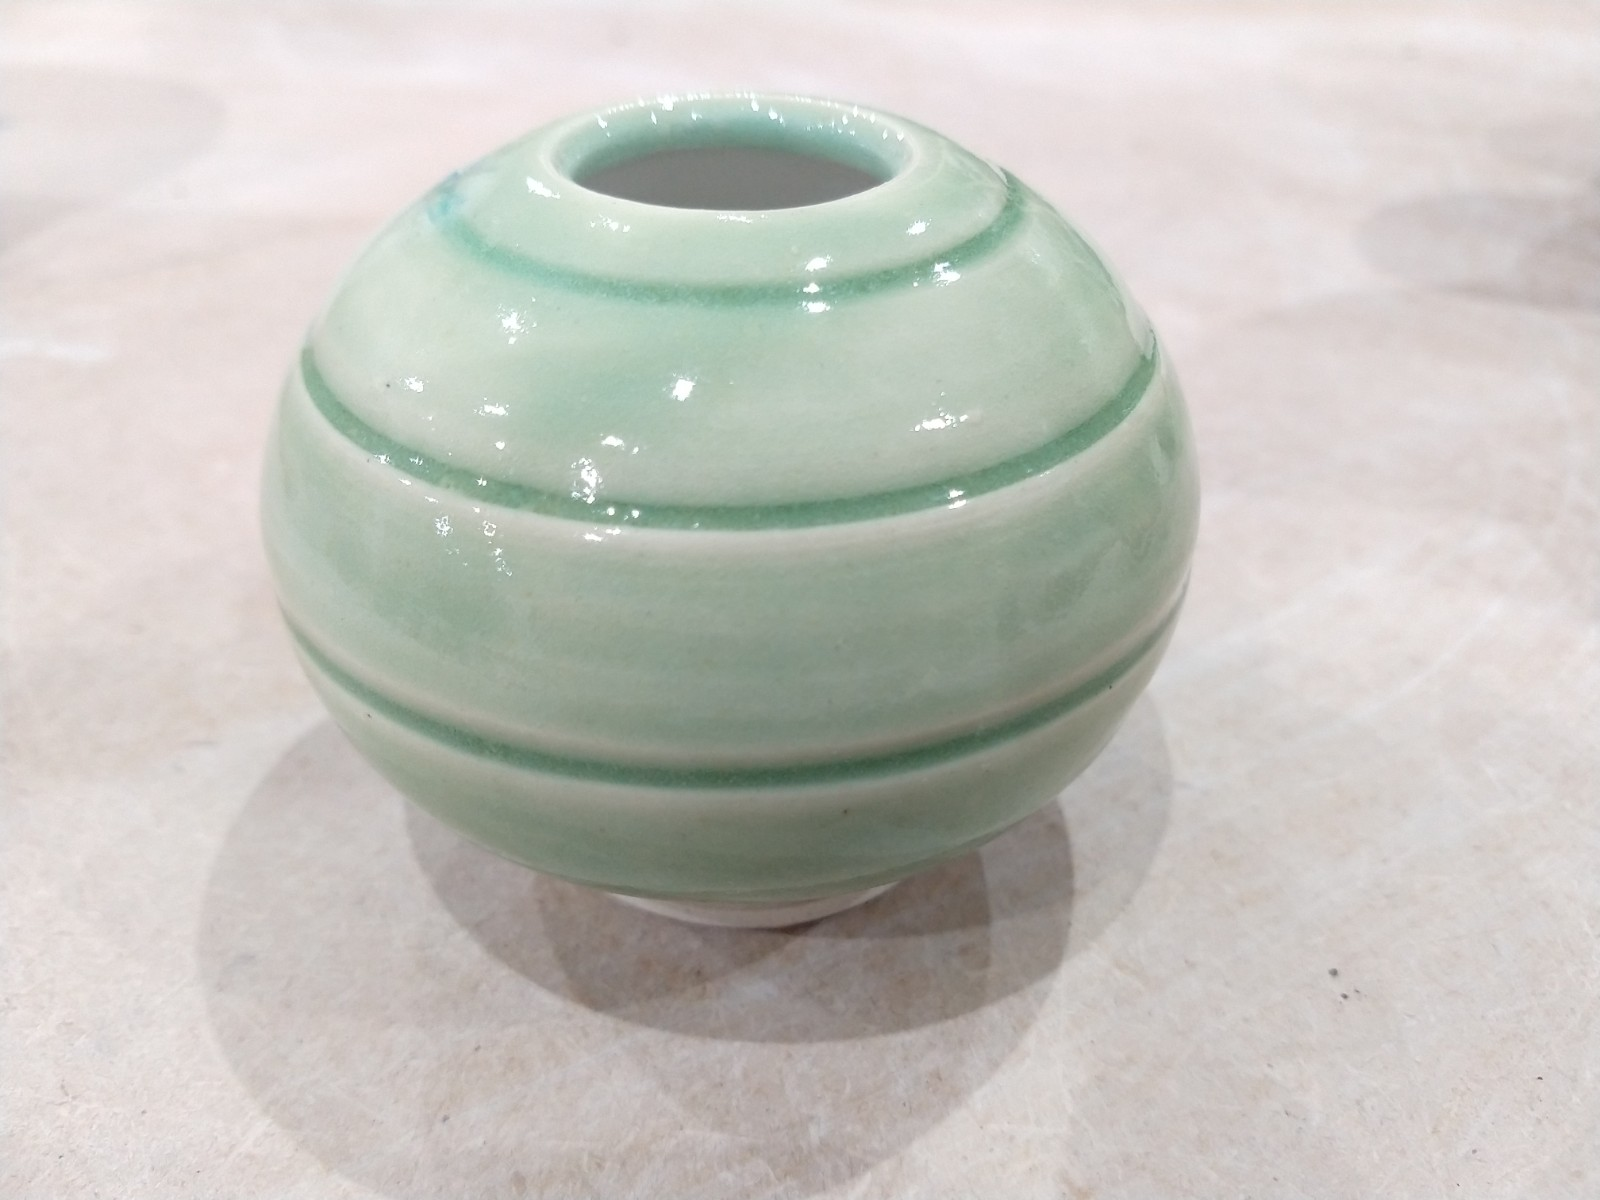 White stoneware and porcelain green 01.